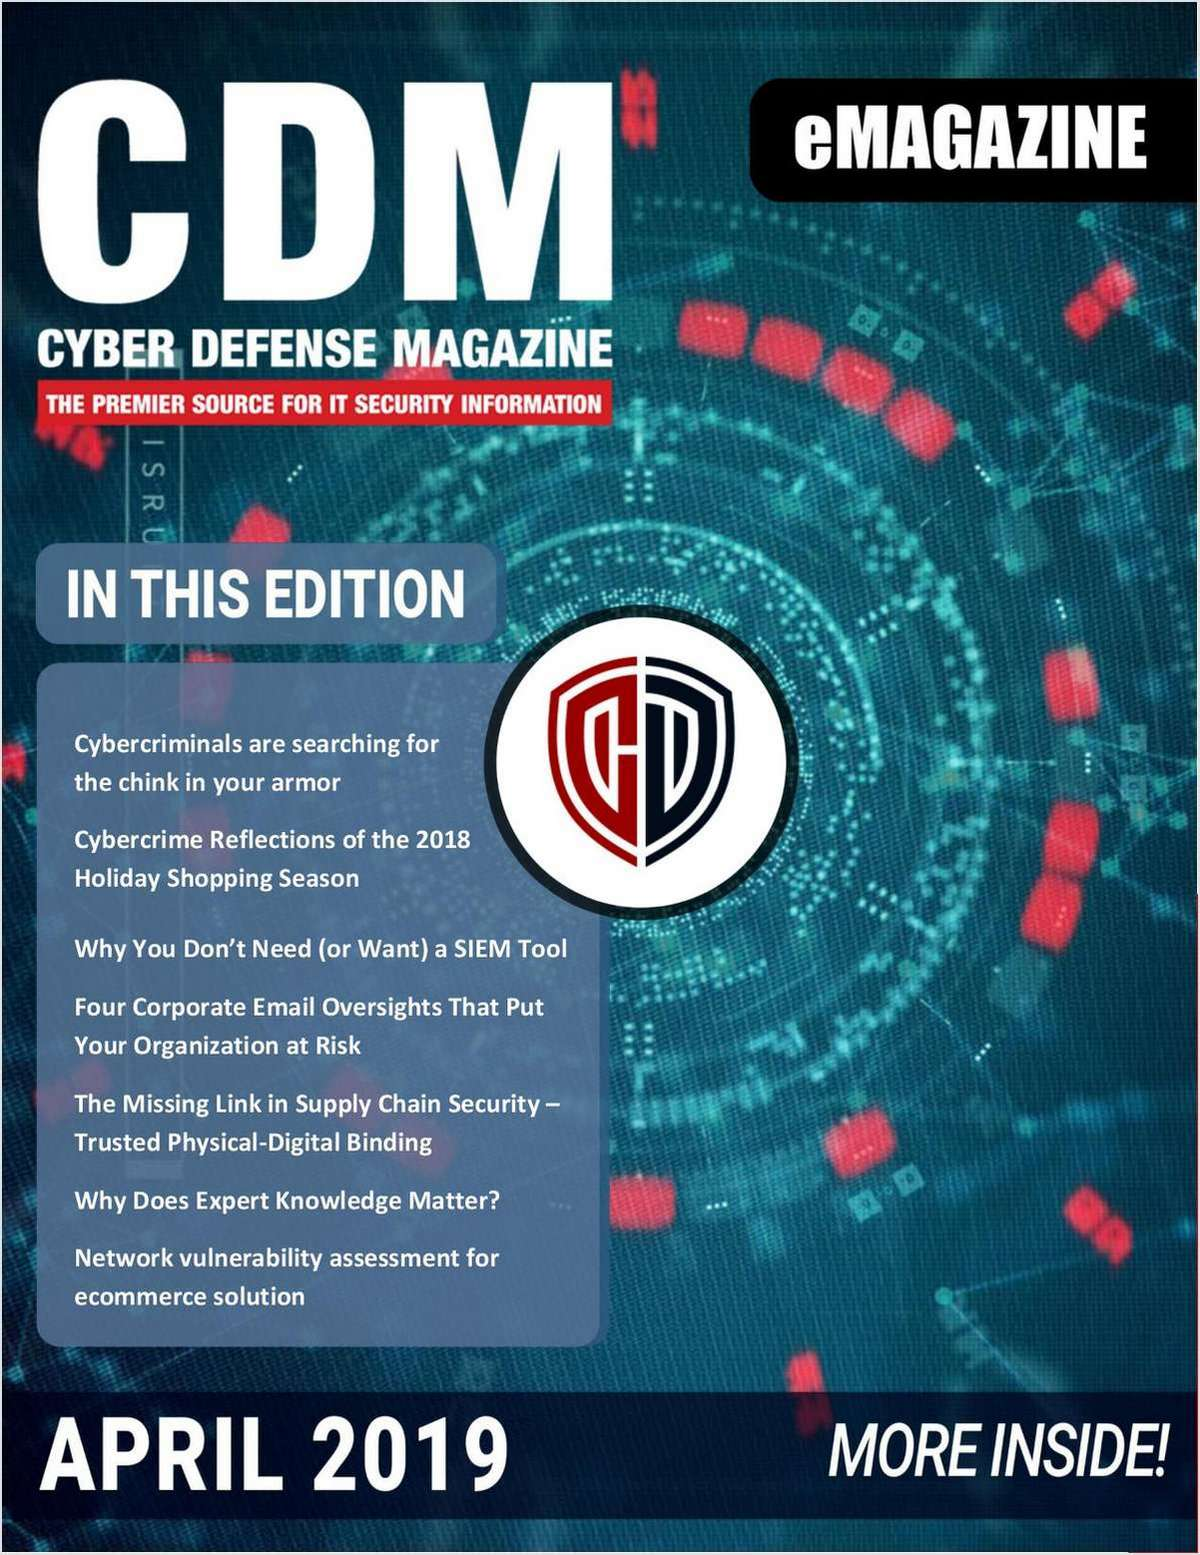 Cyber Defense eMagazine - April 2019 Edition